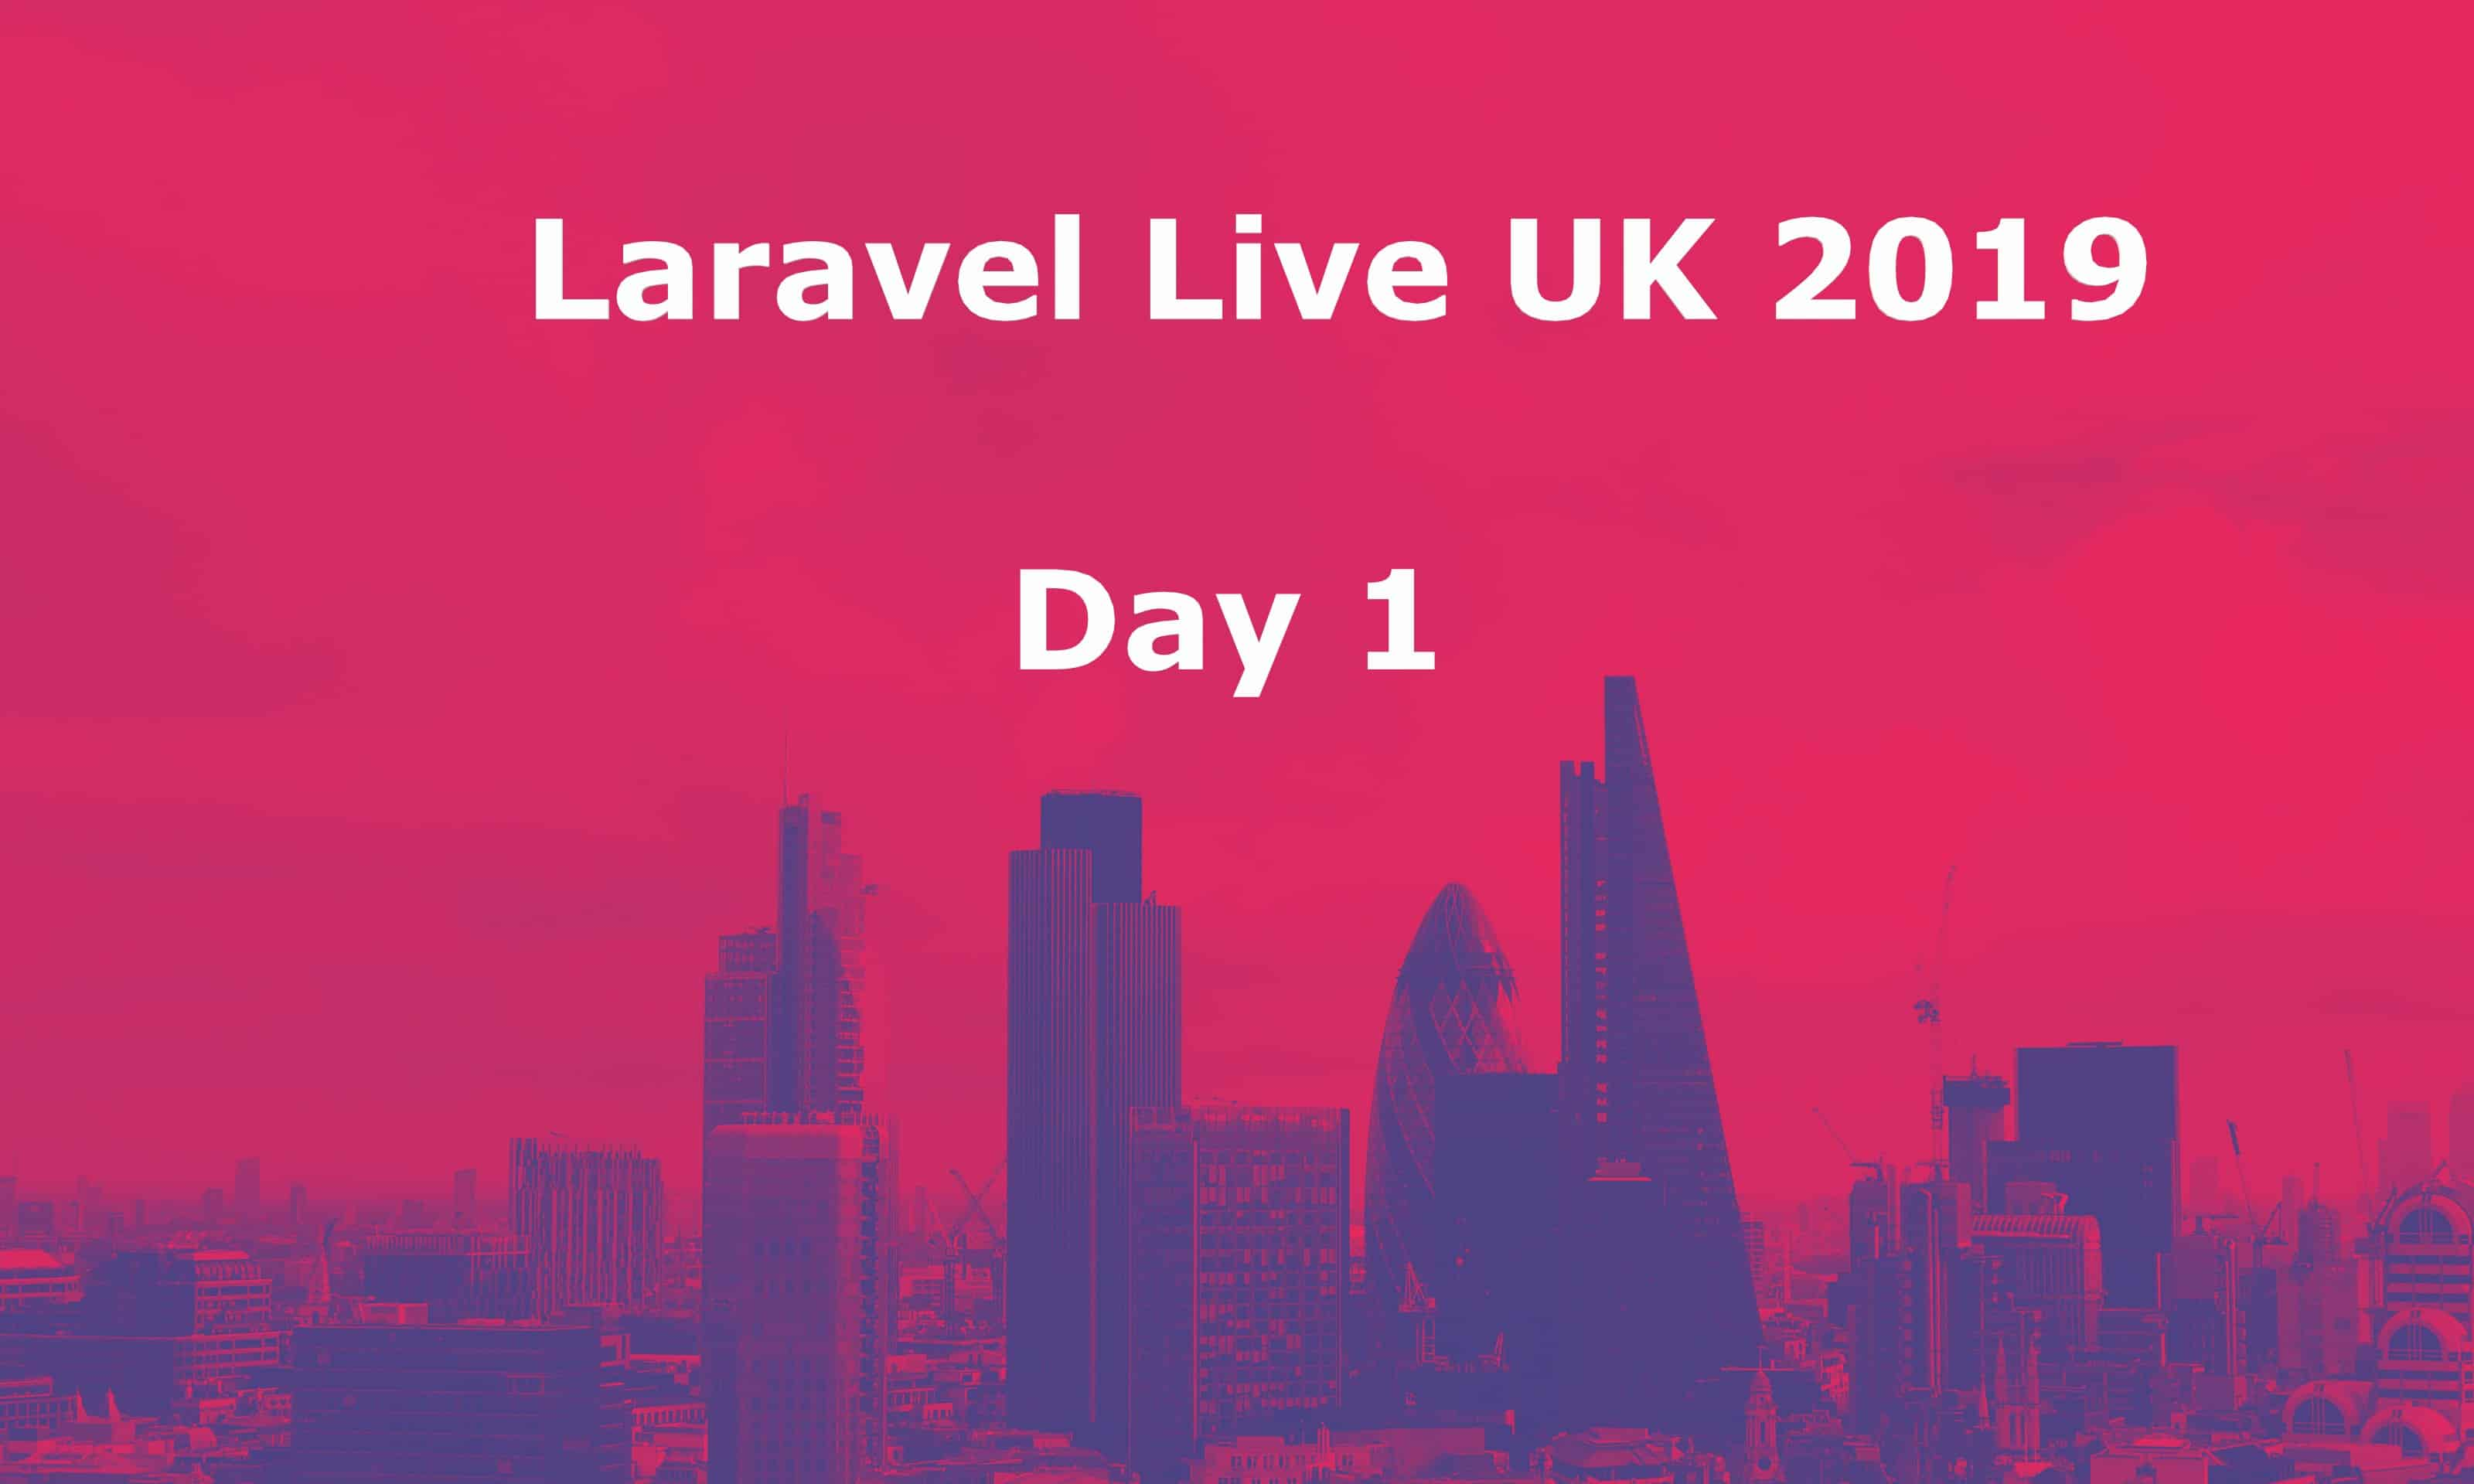 Laravel UK 2019 - Day 1 cover image